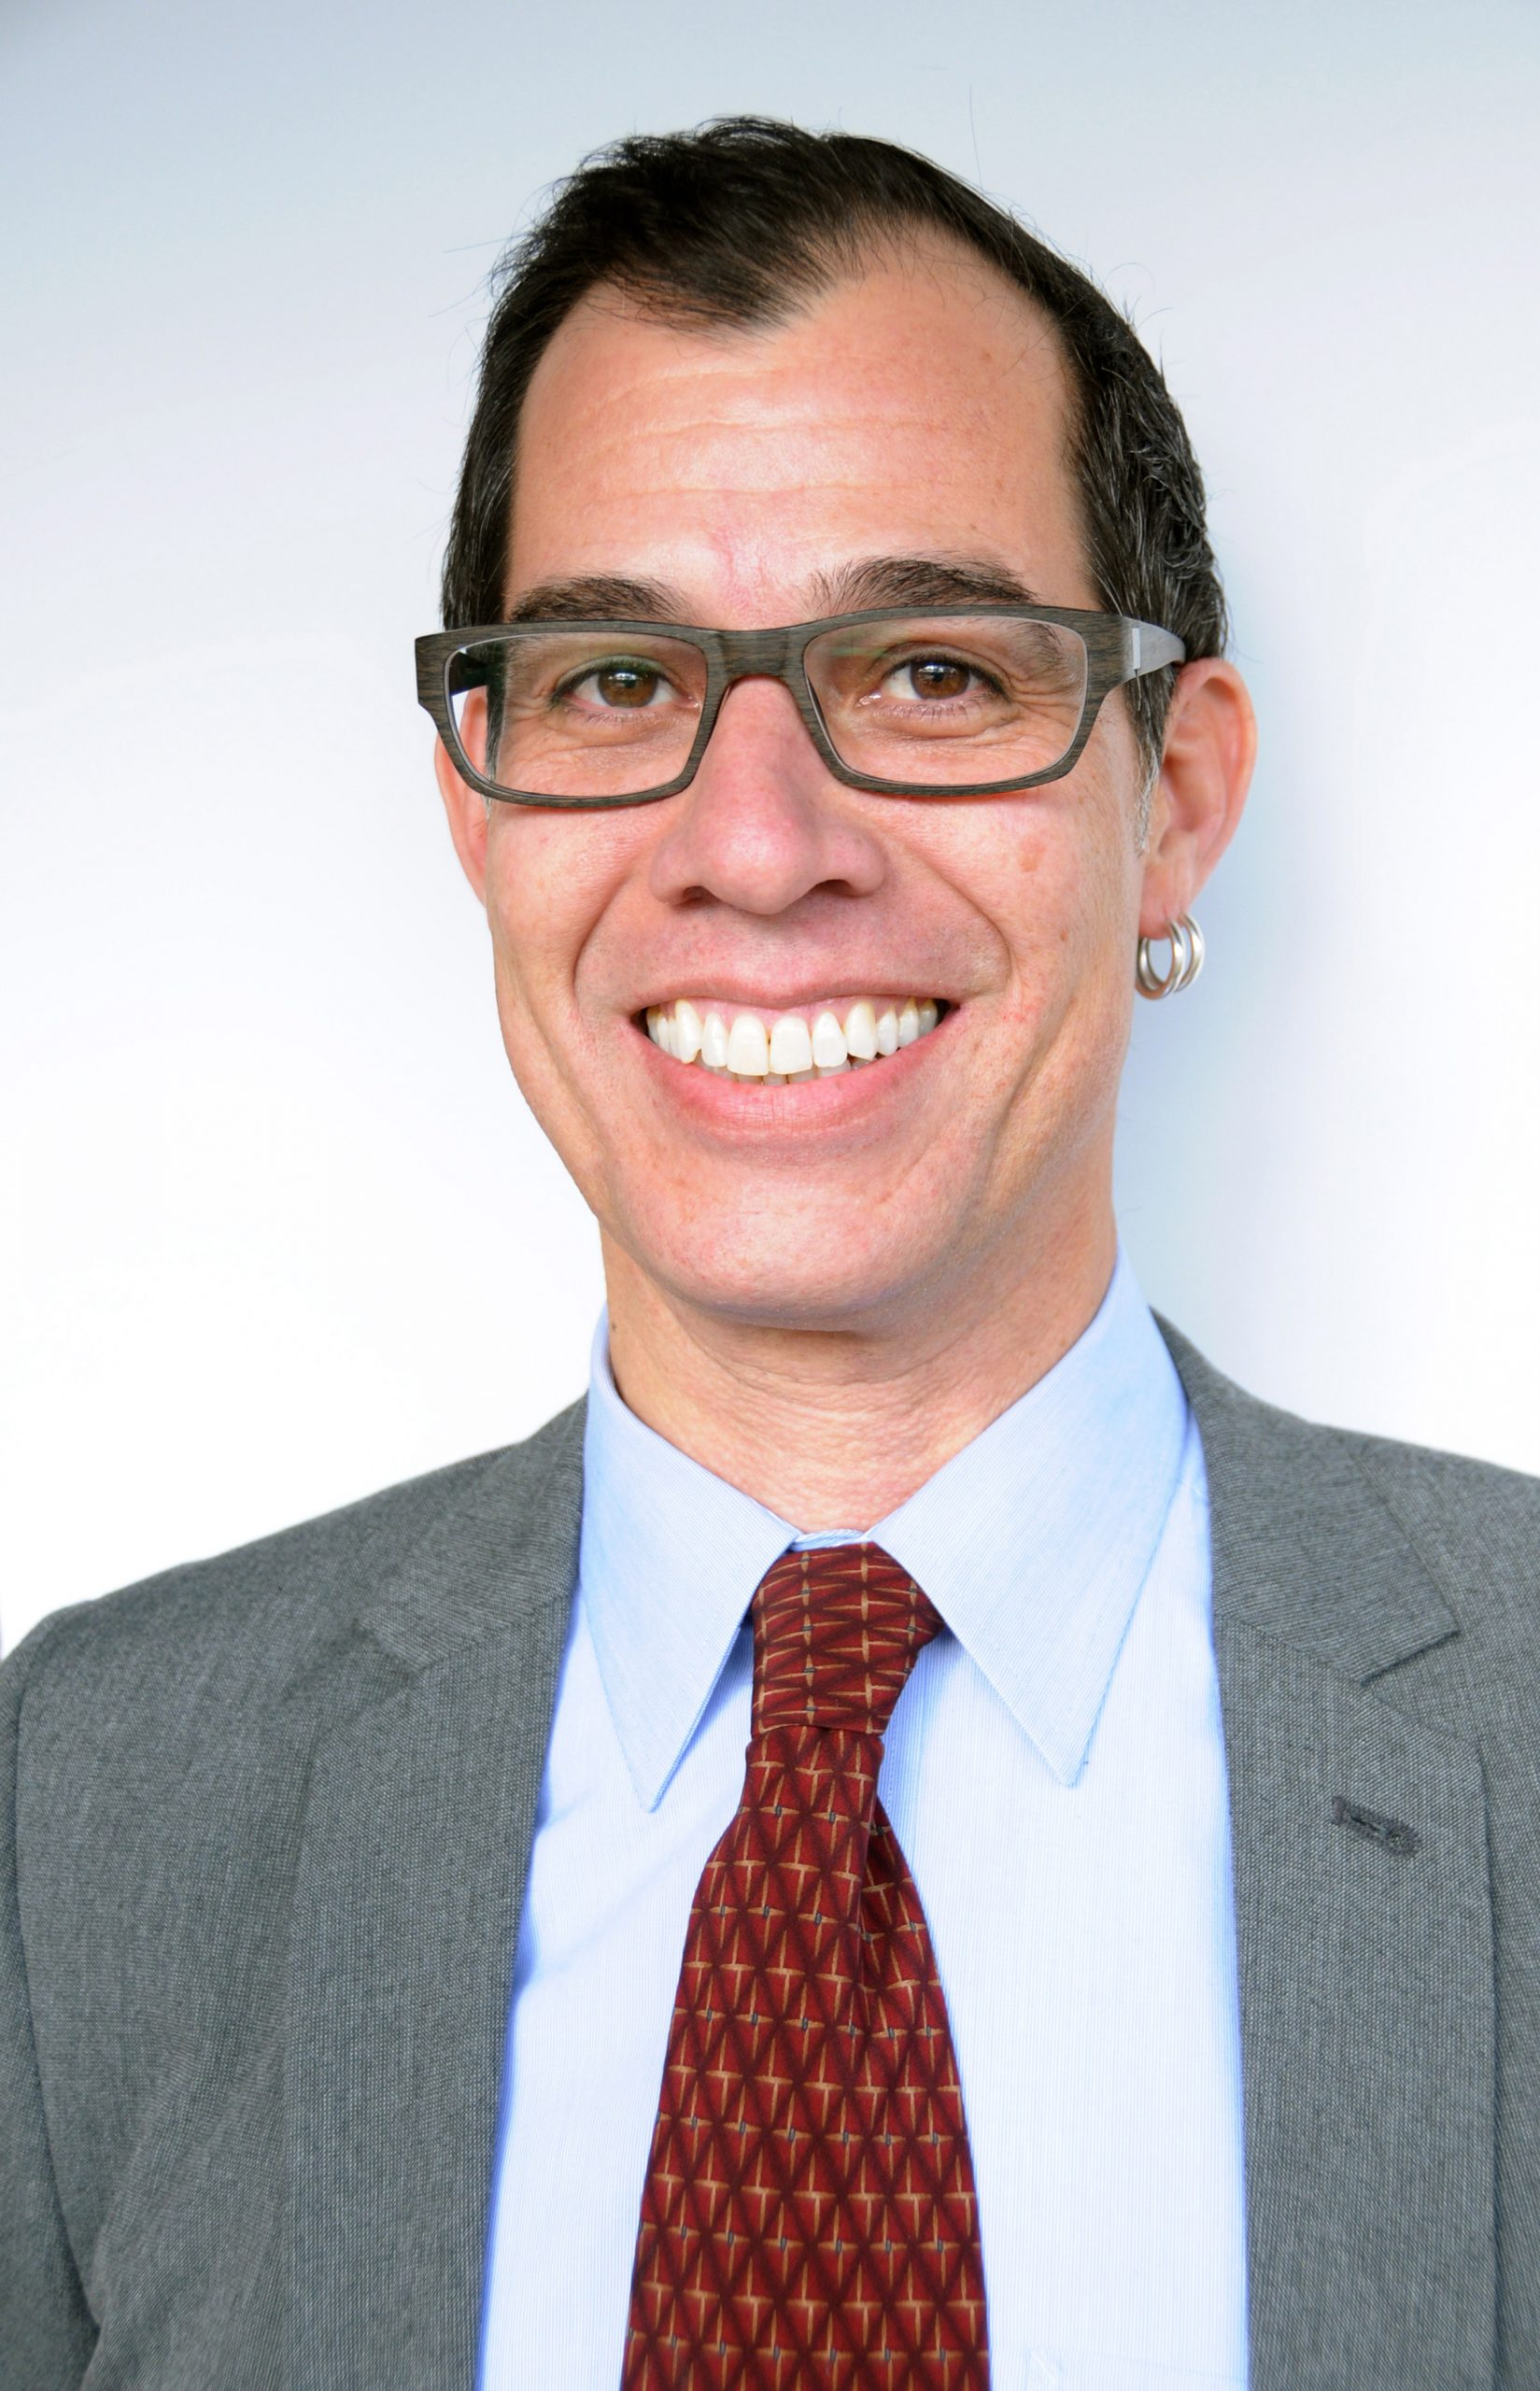 Jorge Rojas, director of education and engagement at the UMFA